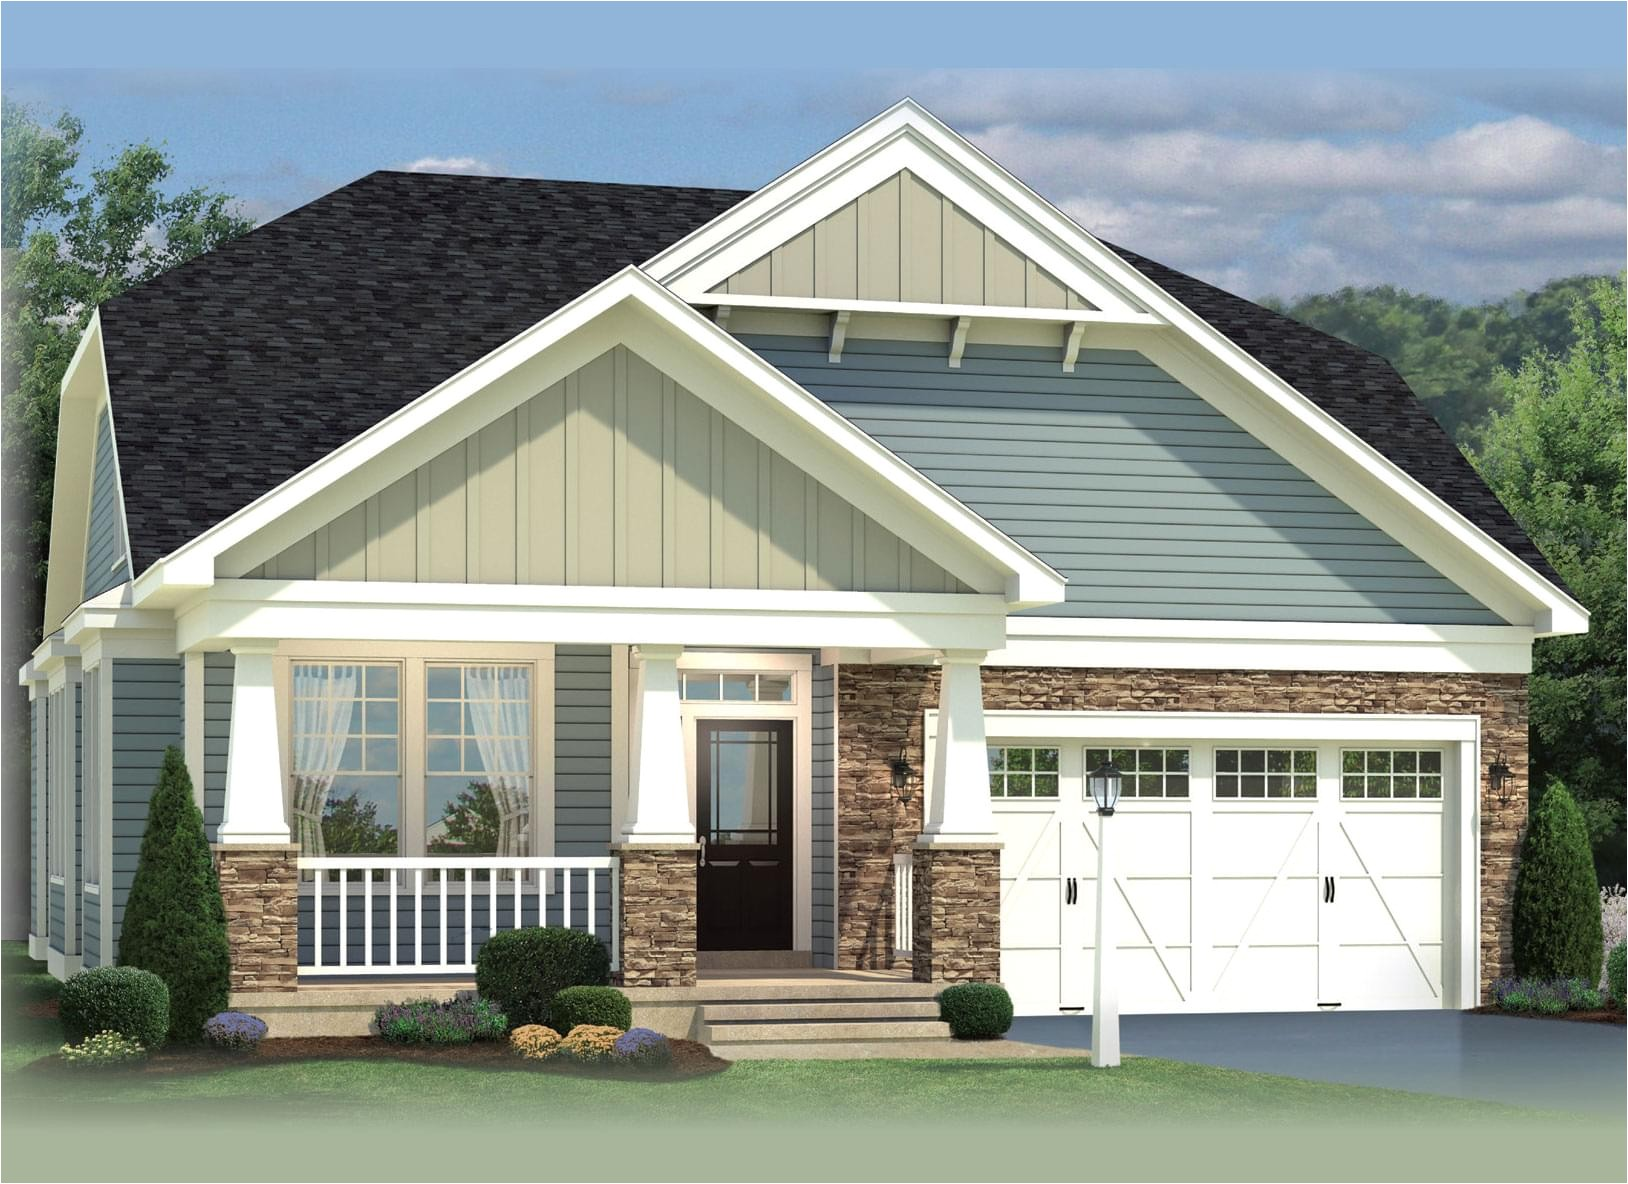 Koch Homes Floor Plans the Hanover New Home In Pasadena Md Harvest Ridge From